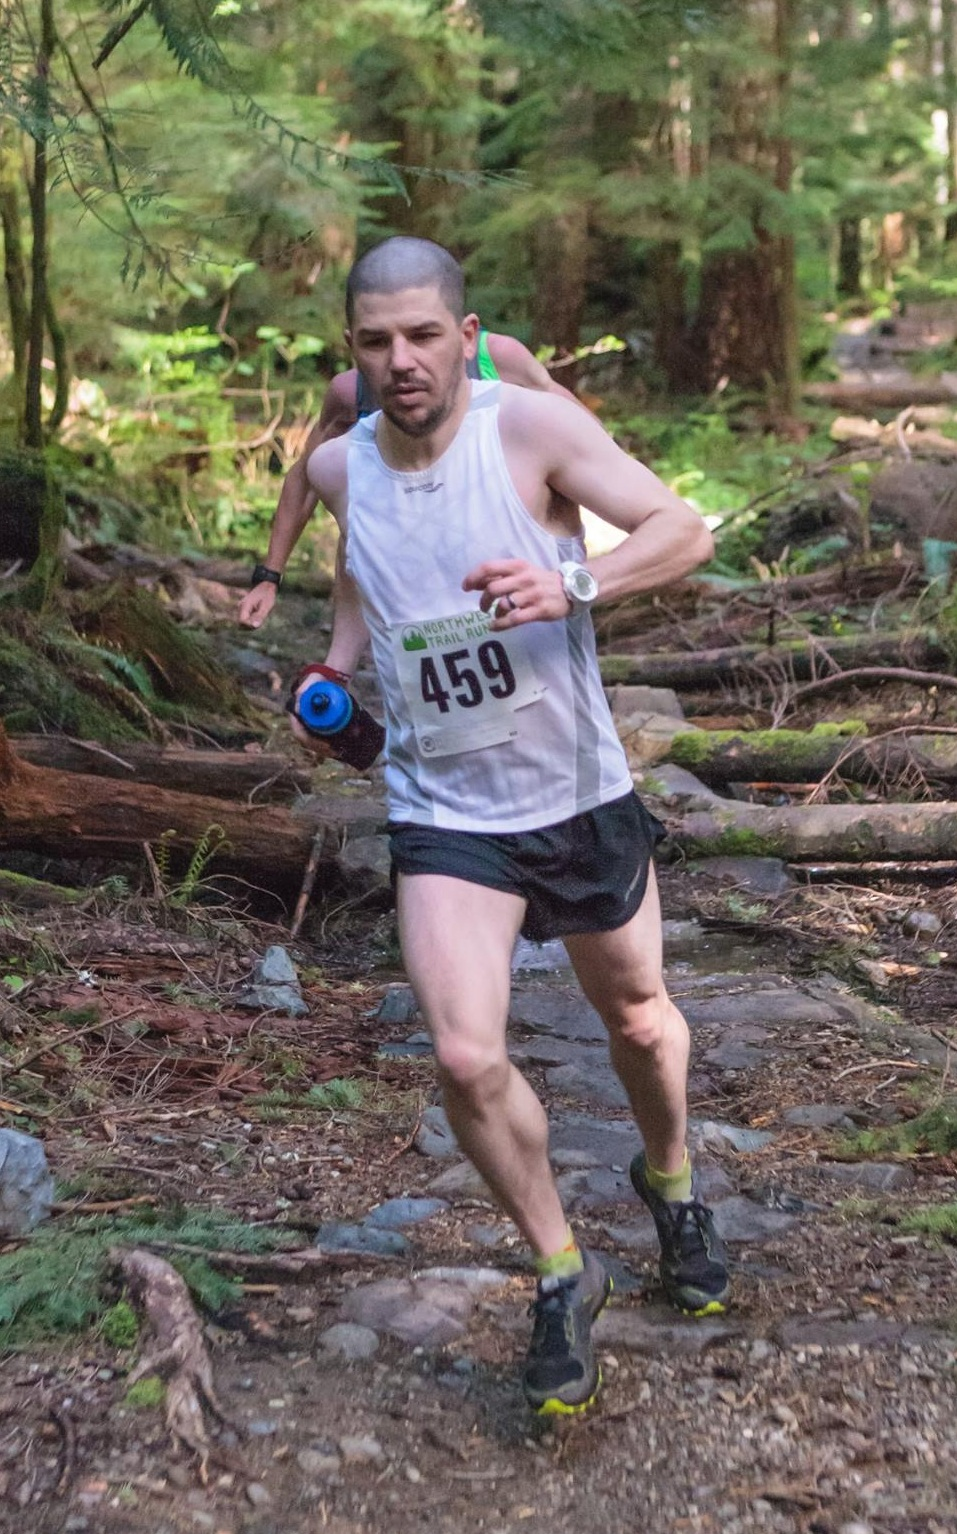 Michael+racing+NW+trail+runs+race.jpg